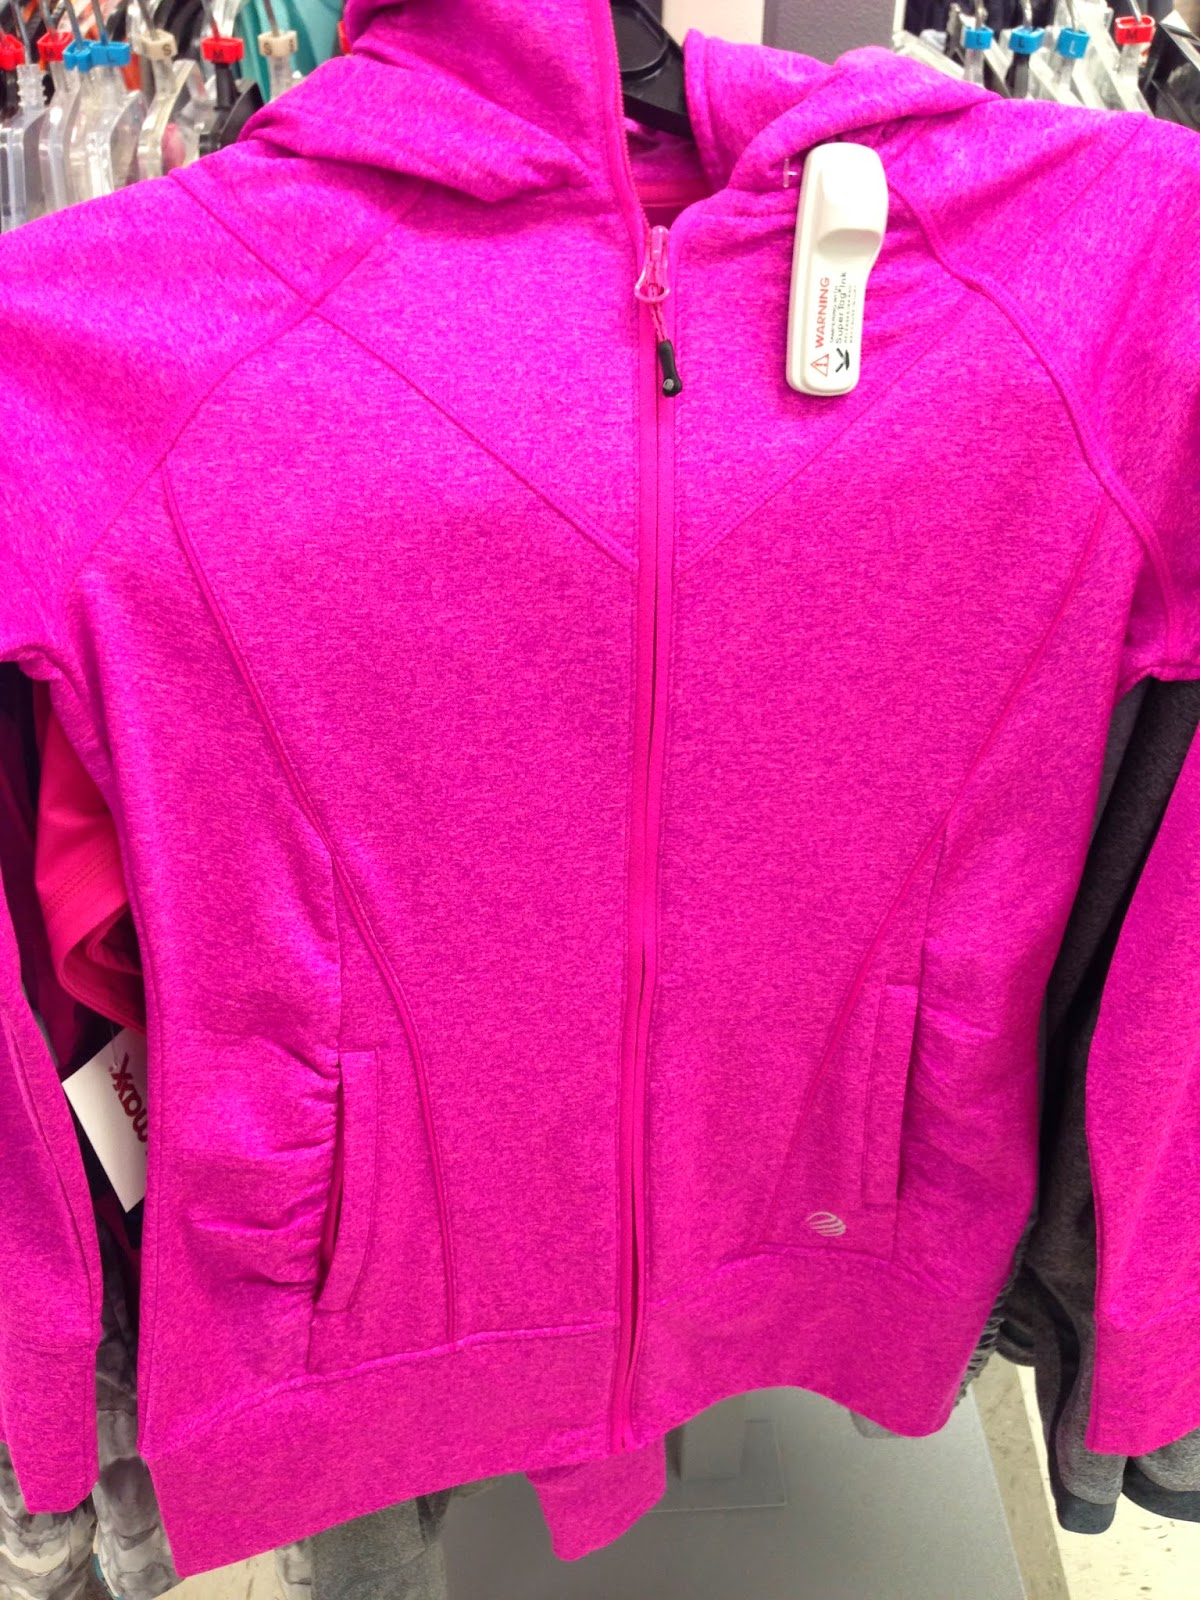 Style Athletics MPG Mondetta Performance Gear Pink Sweatshirt